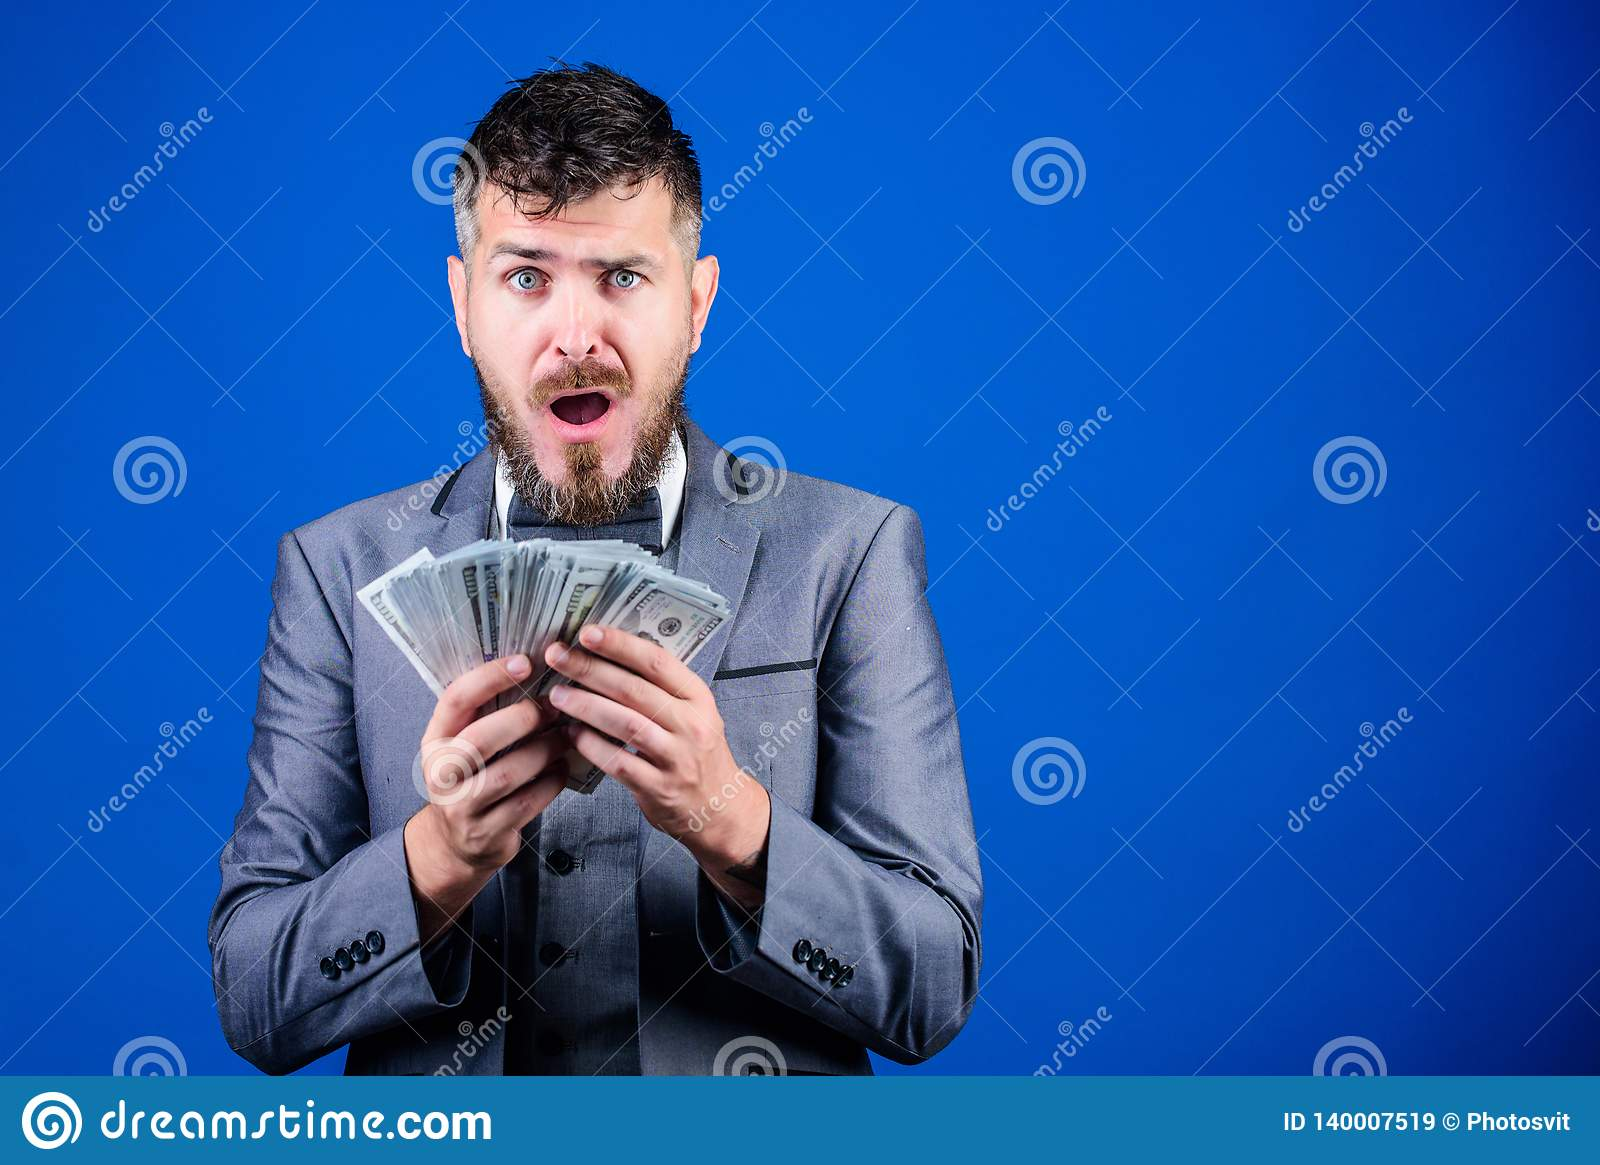 His first salary. Currency broker with bundle of money. Bearded man holding cash money. Rich businessman with us dollars